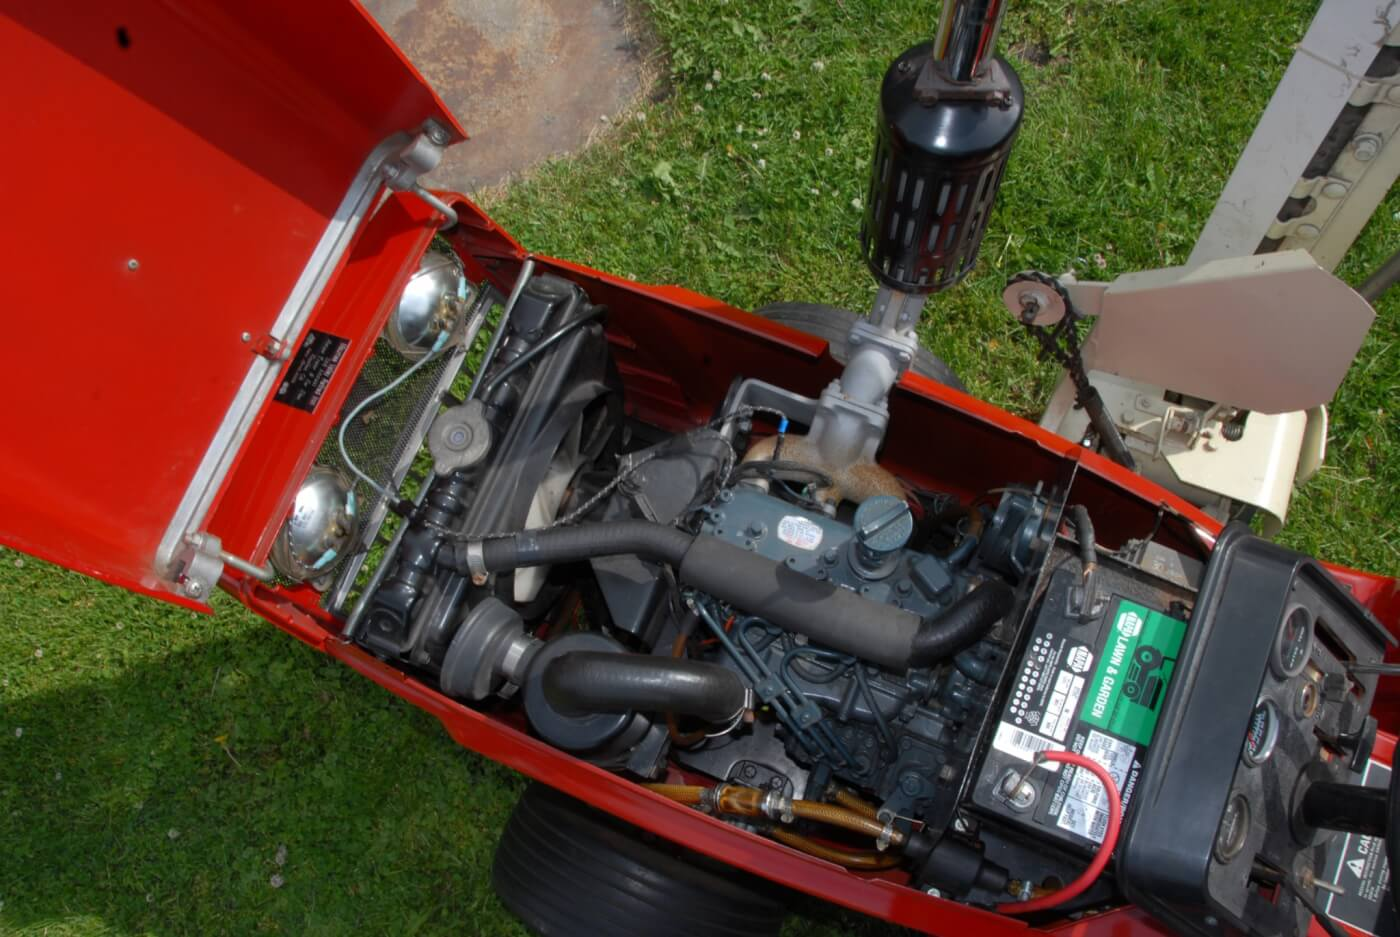 It's small, but it's a real diesel! The water cooled Kubota D-600B is a tiny three-cylinder natural-aspirated indirect-injected engine that can make up to 15 intermittent horsepower at 3,600 rpm. It displaces almost 37 cubic inches and uses a Bosch MD mini-pump with Bosch throttle type injectors that open at 1,991 psi. The pump is fed at 7 psi from a 4-gallon tank via an electric pump. The crankshaft is supported by four main bearings and the cylinders are dry sleeved in the iron block. The engine assembly, including the radiator and fan, weighs 136 lbs. The only downside to the installation is that the lawn and garden-sized battery may not always be up to spinning the 23:1 CR diesel in cold weather; a block heater was optional and probably necessary when using the 782D for winter work.